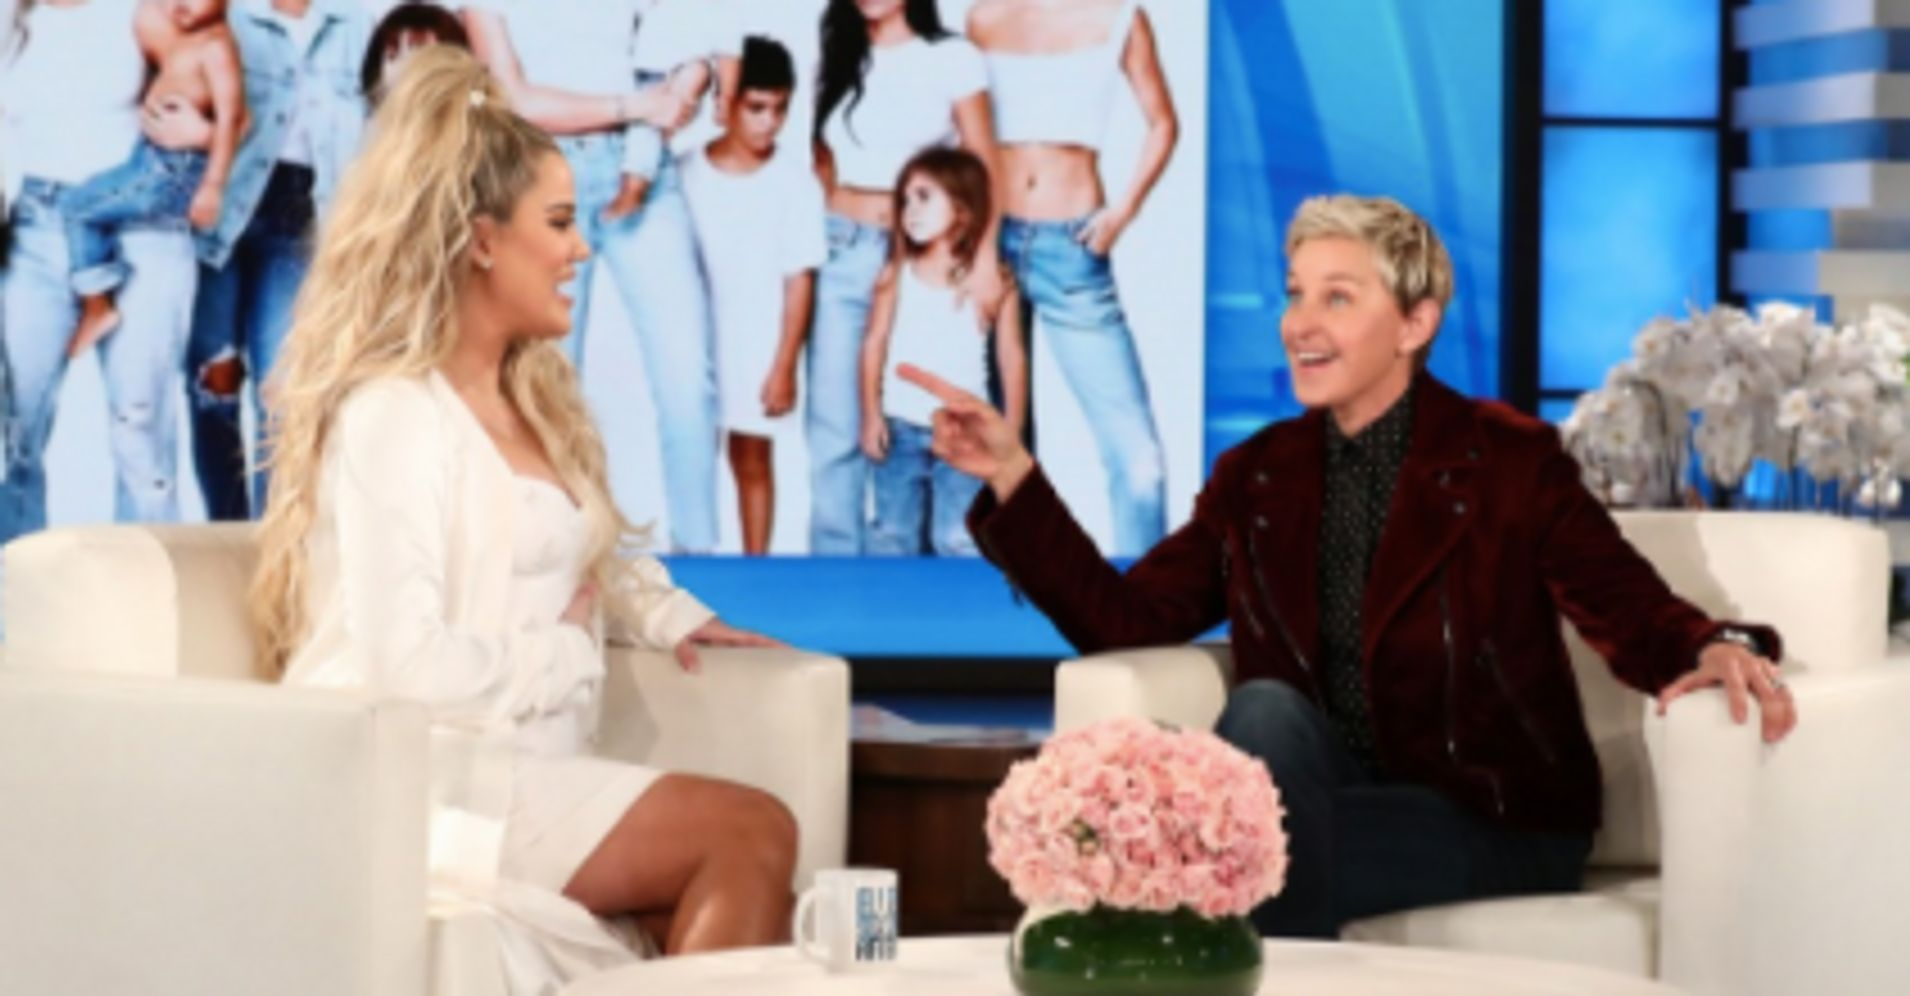 Ellen Confirms Kylie Jenner Is Pregnant By Looking At Khloe's Eyes